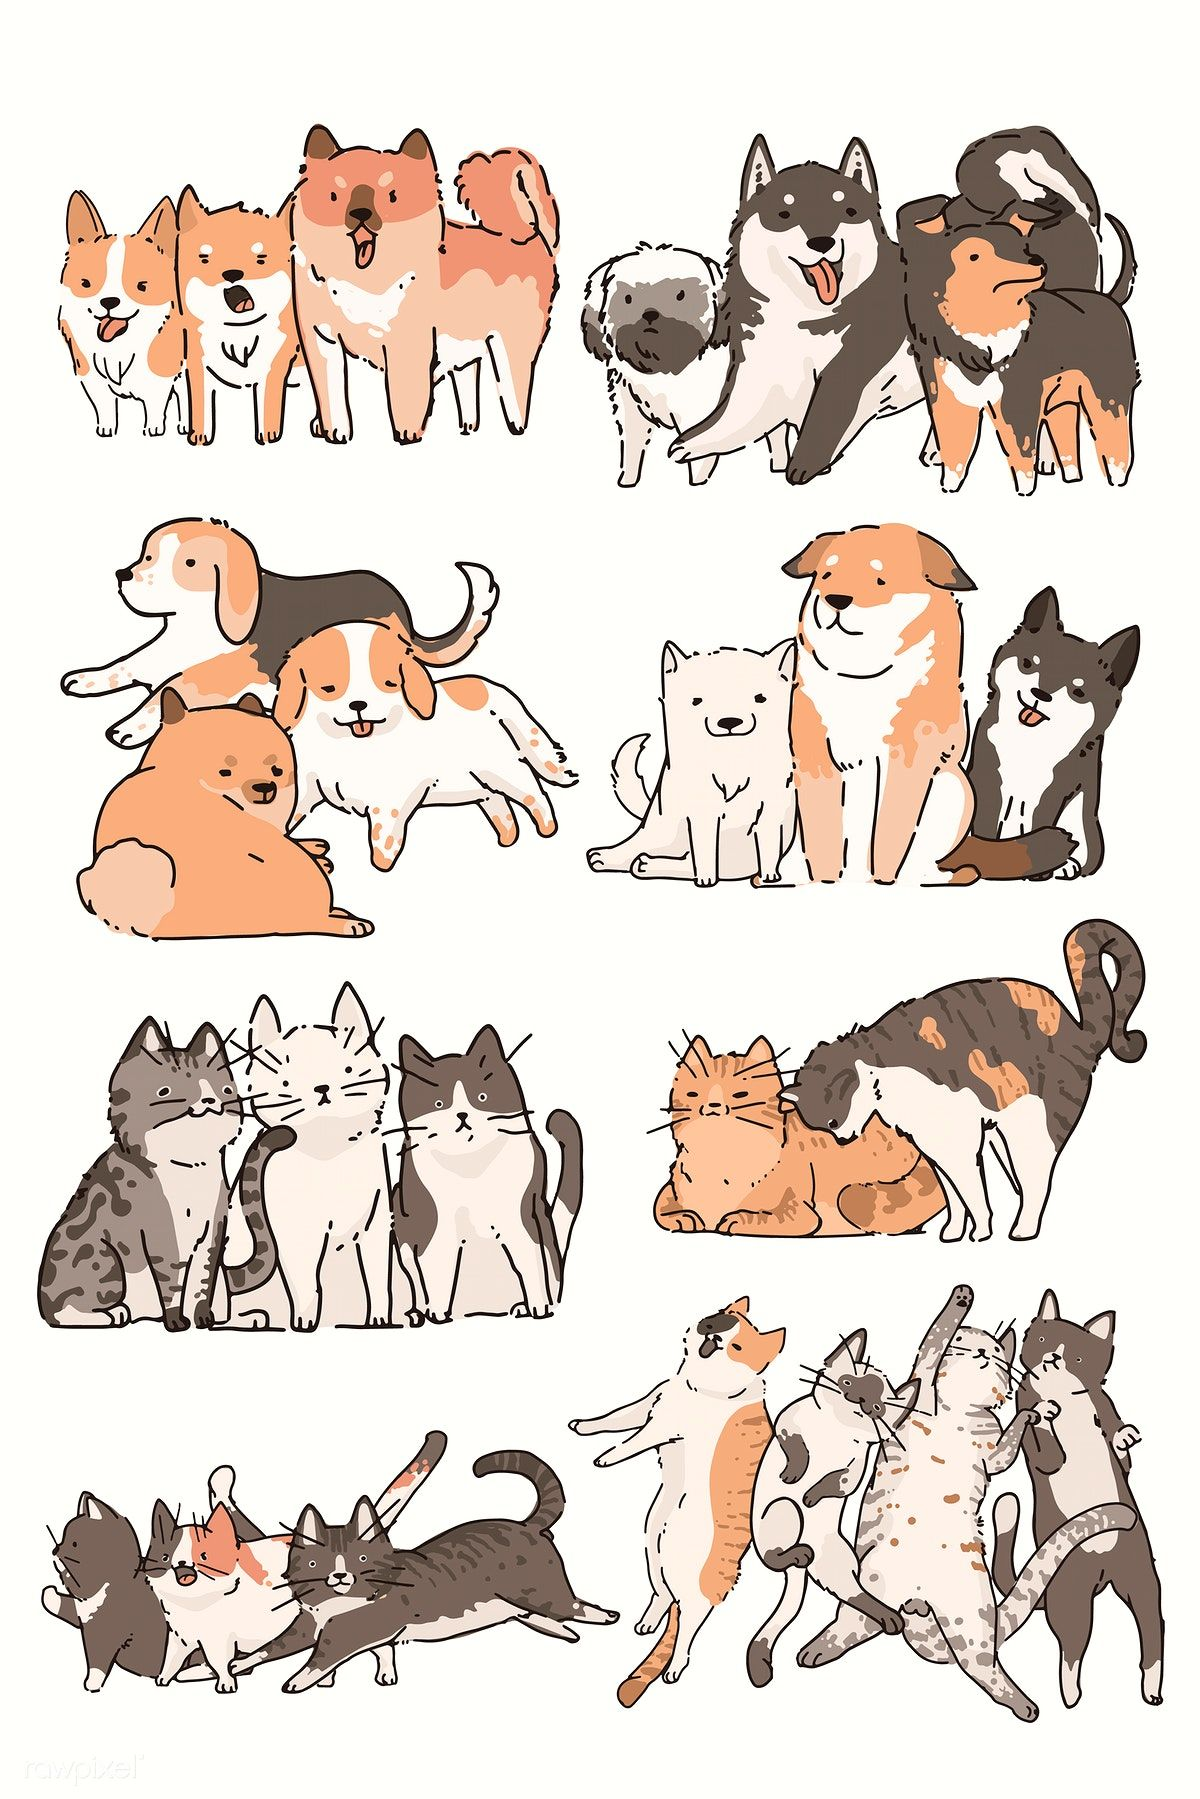 Cats And Dogs Doodle Vector Set Premium Image By Rawpixel Com Niwat